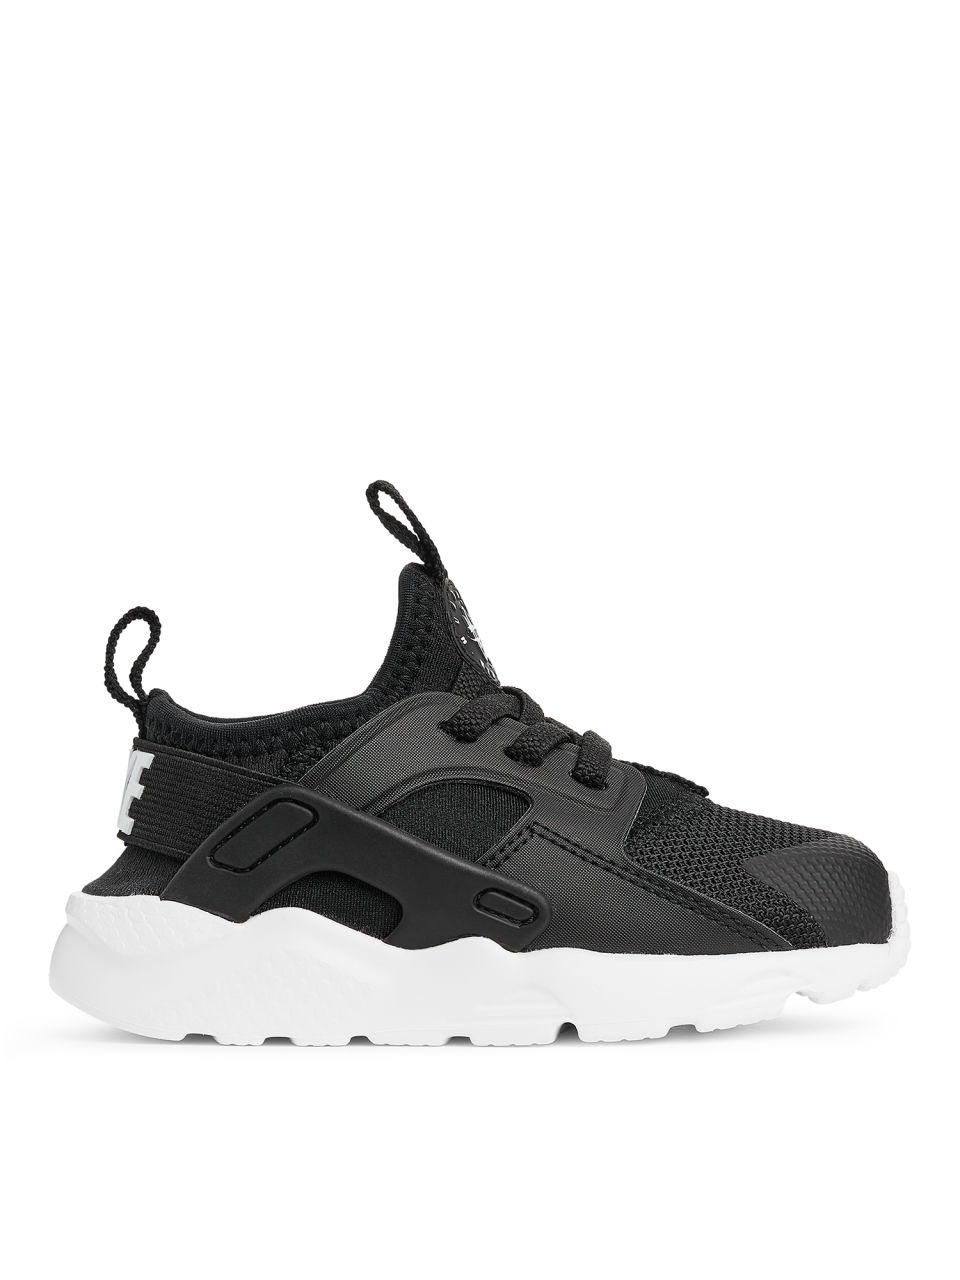 the latest 421bf 91fef Nike Huarache Run Ultra - Black - Shoes - ARKET GB in 2019 ...